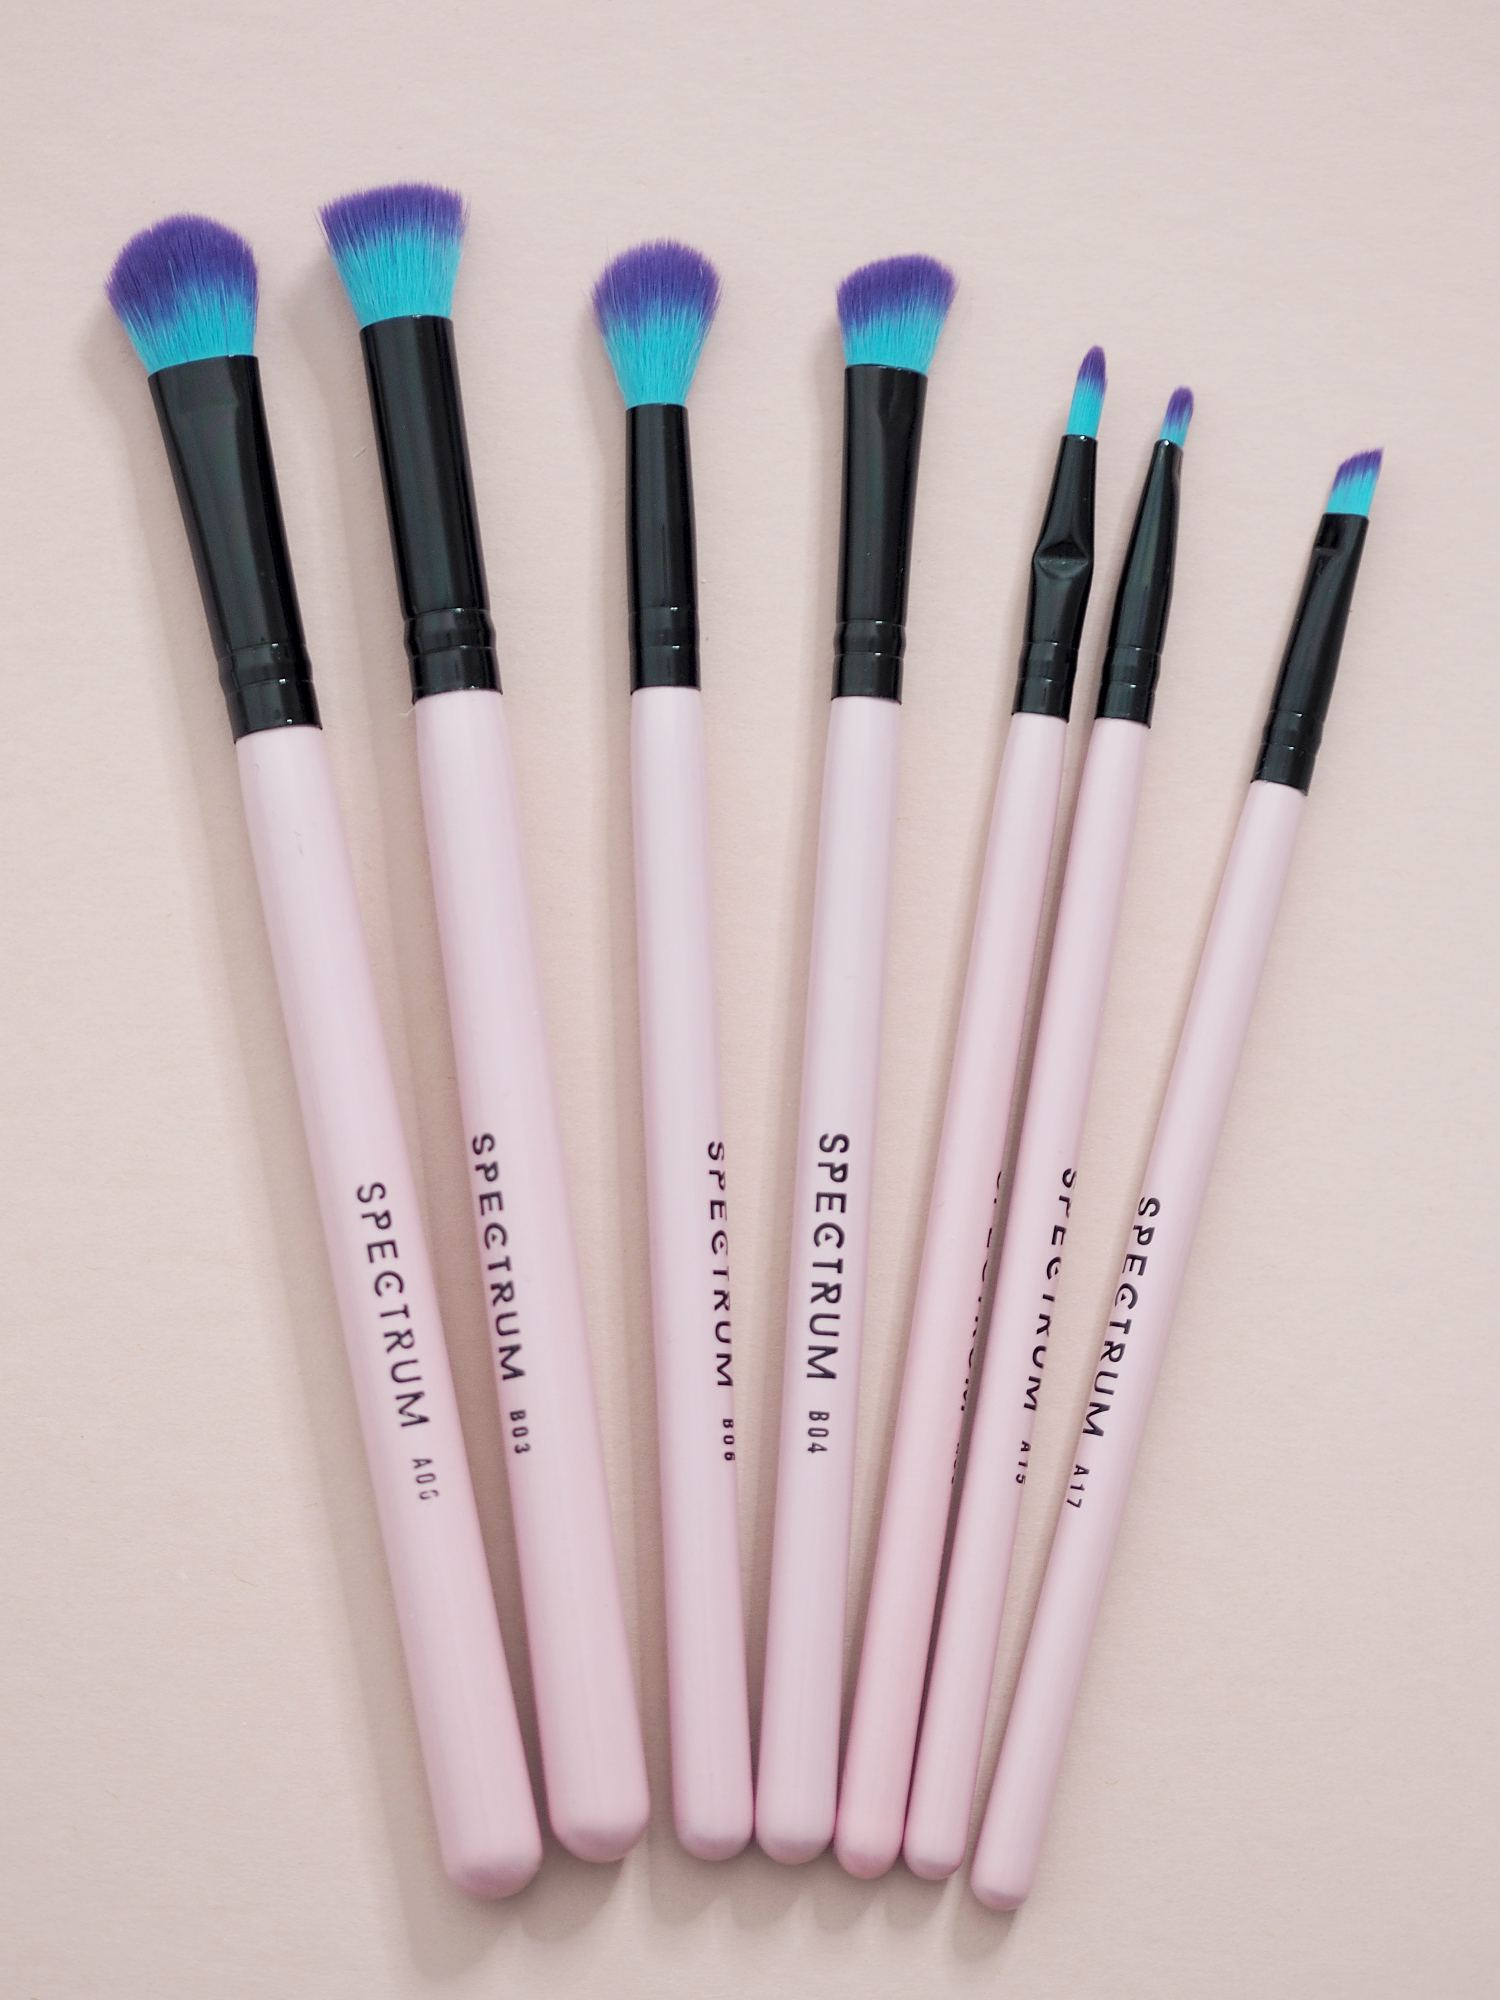 spectrum makeup brushes